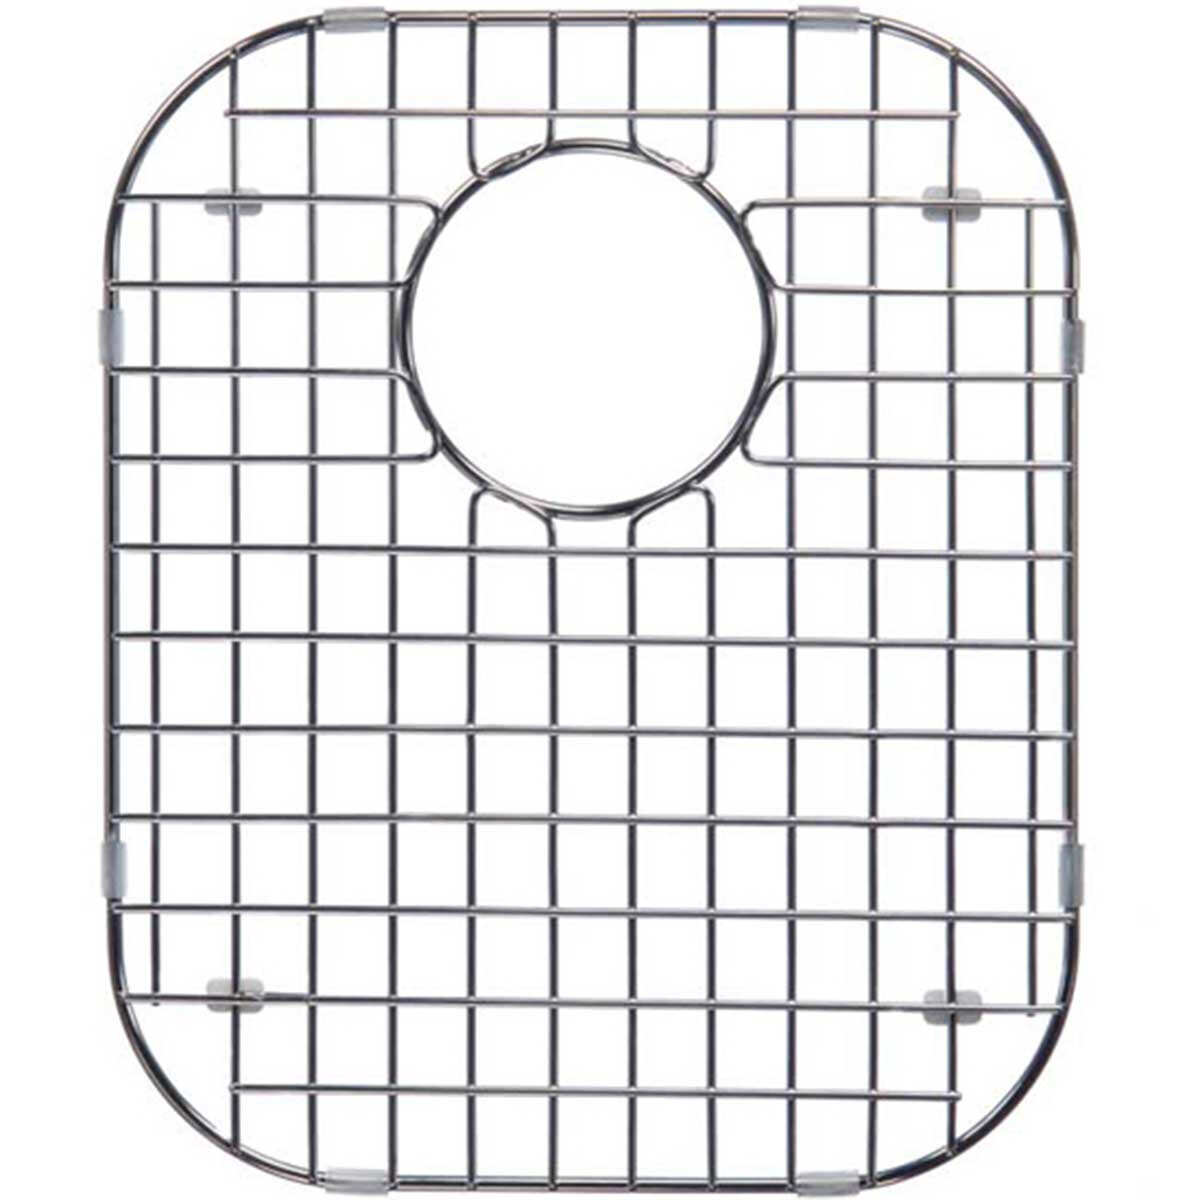 Artisan BG-16S Stainless Steel Kitchen Sink Grid